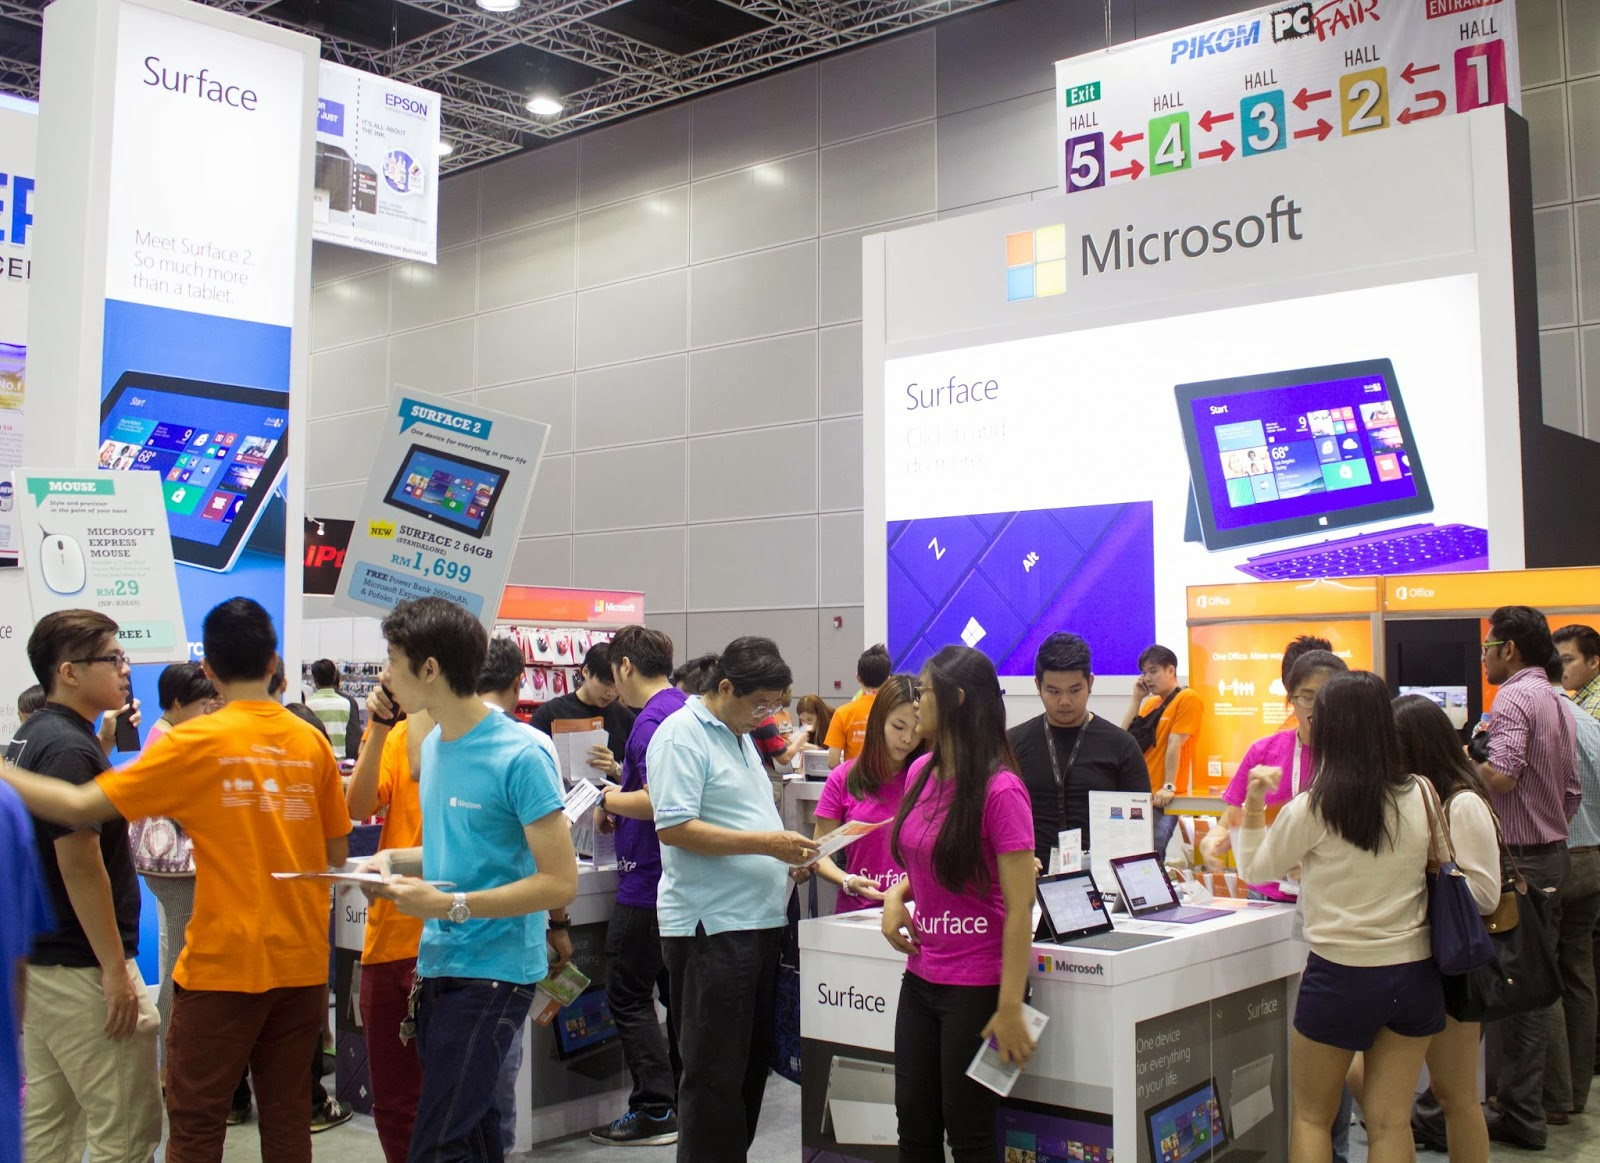 Coverage of PIKOM PC Fair 2014 @ Kuala Lumpur Convention Center 299